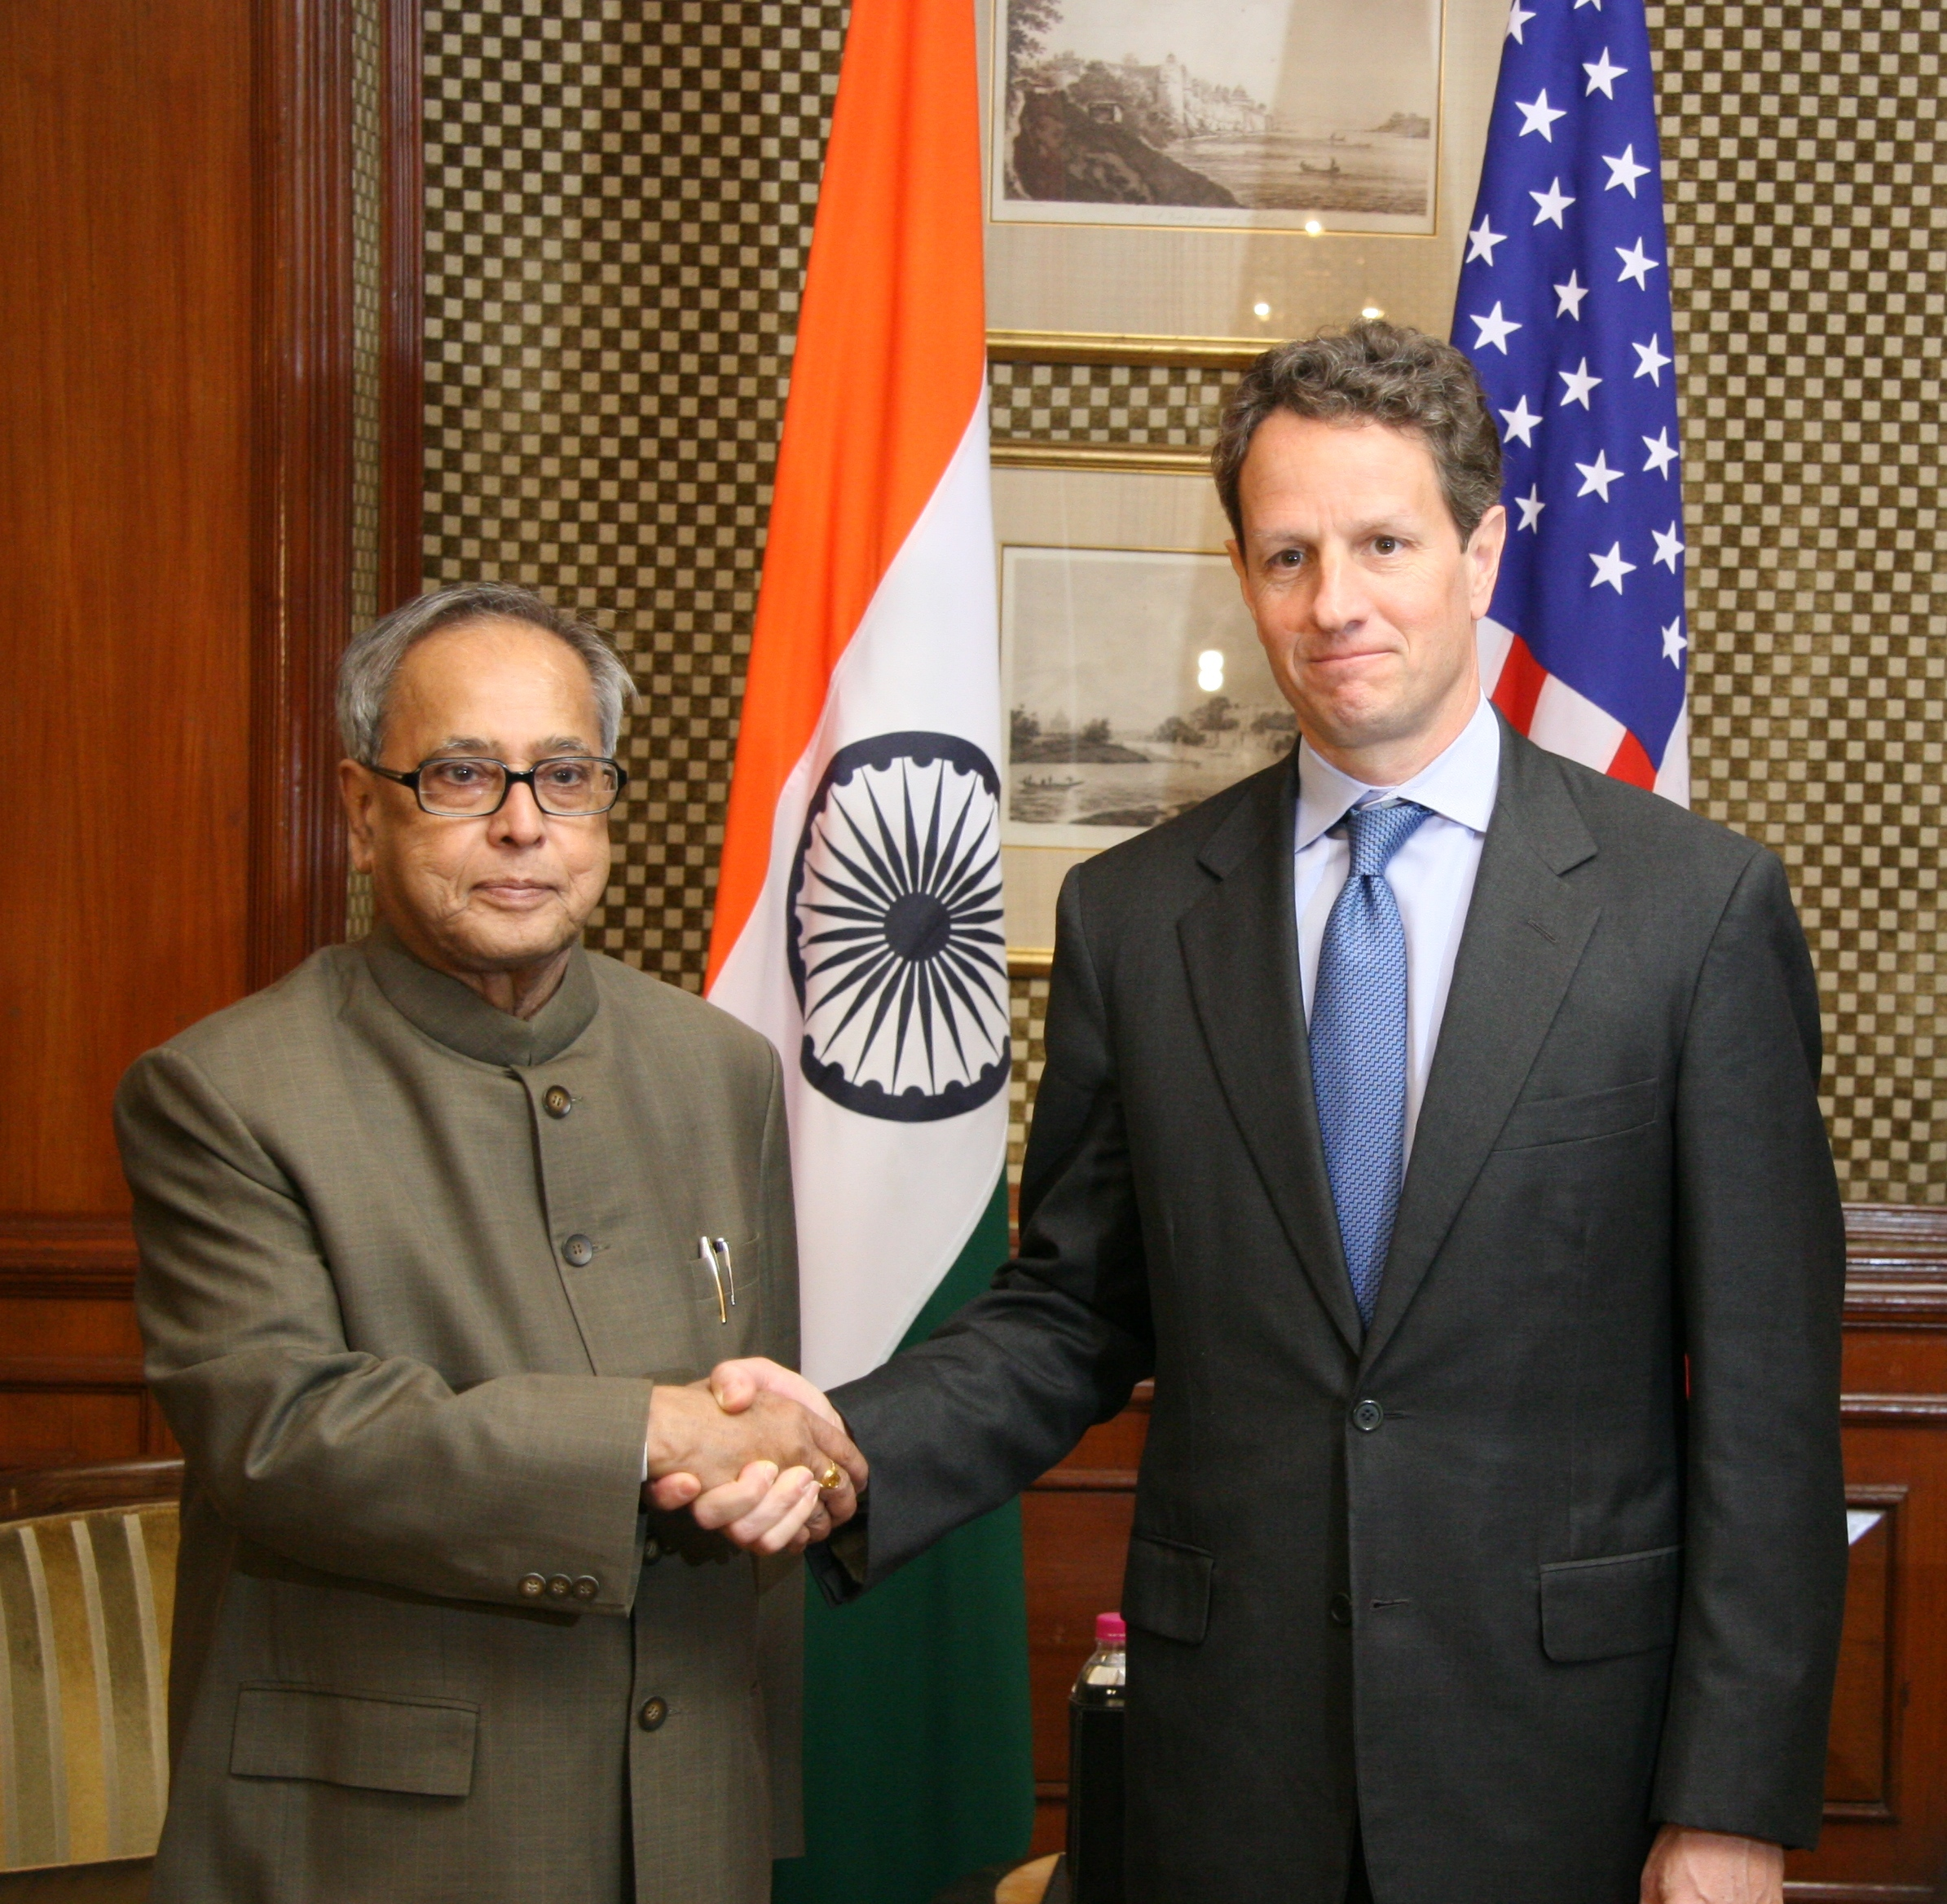 Finance Minister (later President) of India Pranab Mukherjee with Secretary of the Treasury Tim Geithner at Washington, D.C. in 2010.